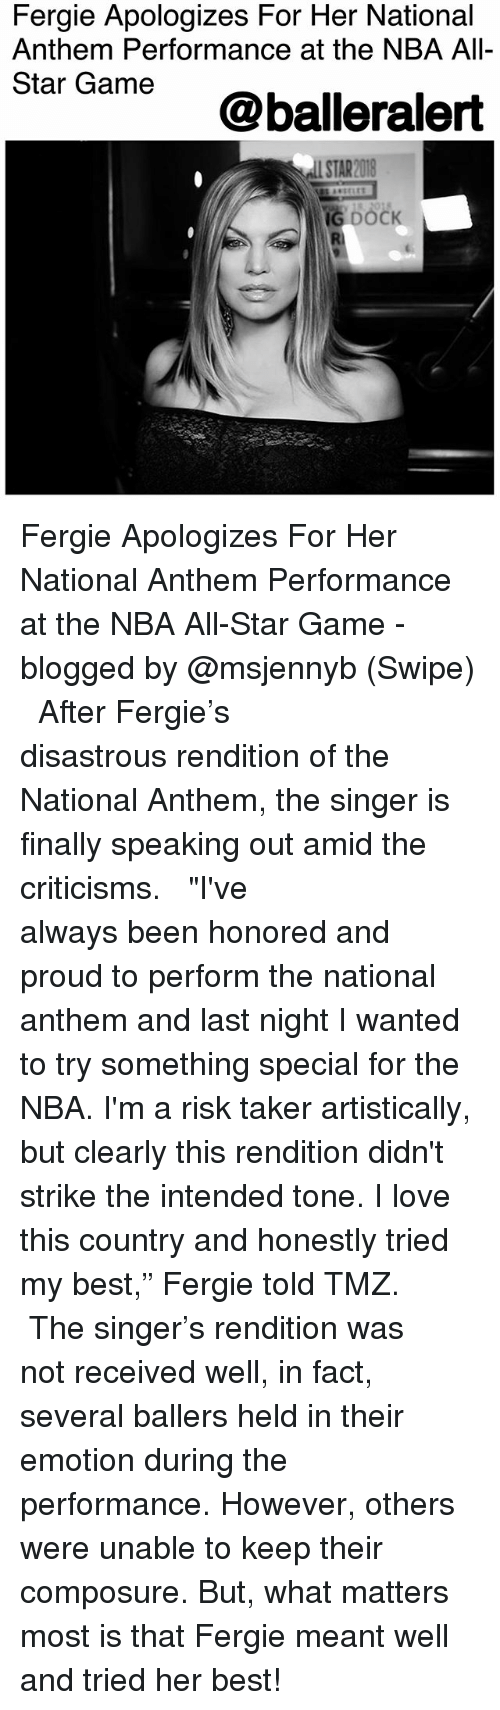 "NBA All-Star Game: Fergie Apologizes For Her National  Anthem Performance at the NBA All-  Star Game  @balleralert  STAR2018 Fergie Apologizes For Her National Anthem Performance at the NBA All-Star Game - blogged by @msjennyb (Swipe) ⠀⠀⠀⠀⠀⠀⠀ ⠀⠀⠀⠀⠀⠀⠀ After Fergie's disastrous rendition of the National Anthem, the singer is finally speaking out amid the criticisms. ⠀⠀⠀⠀⠀⠀⠀ ⠀⠀⠀⠀⠀⠀⠀ ""I've always been honored and proud to perform the national anthem and last night I wanted to try something special for the NBA. I'm a risk taker artistically, but clearly this rendition didn't strike the intended tone. I love this country and honestly tried my best,"" Fergie told TMZ. ⠀⠀⠀⠀⠀⠀⠀ ⠀⠀⠀⠀⠀⠀⠀ The singer's rendition was not received well, in fact, several ballers held in their emotion during the performance. However, others were unable to keep their composure. But, what matters most is that Fergie meant well and tried her best!"